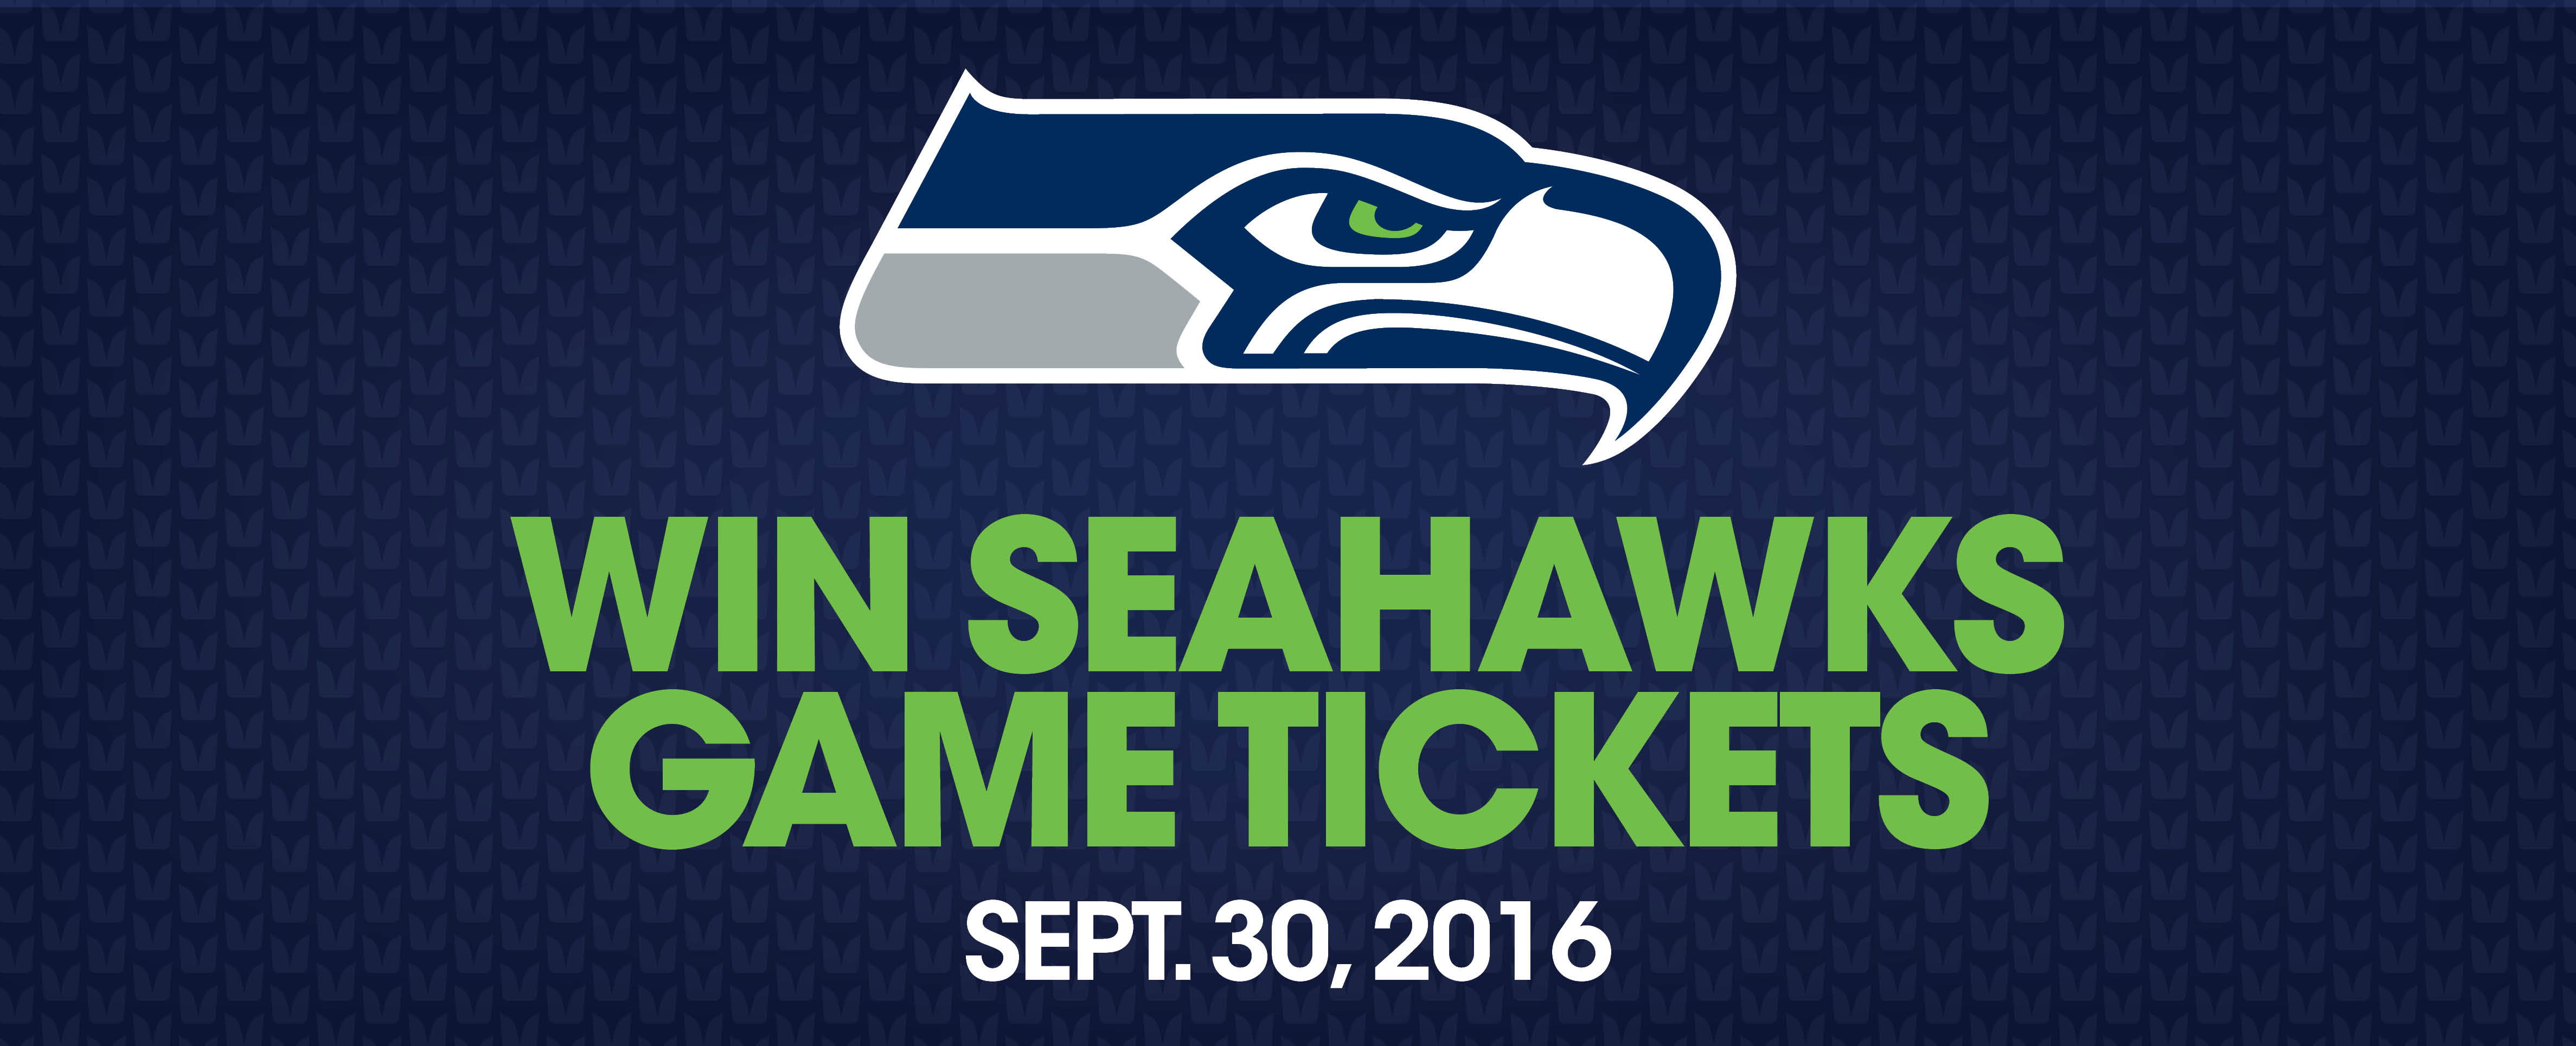 Central Washington Fair - Seahawks Game Tickets